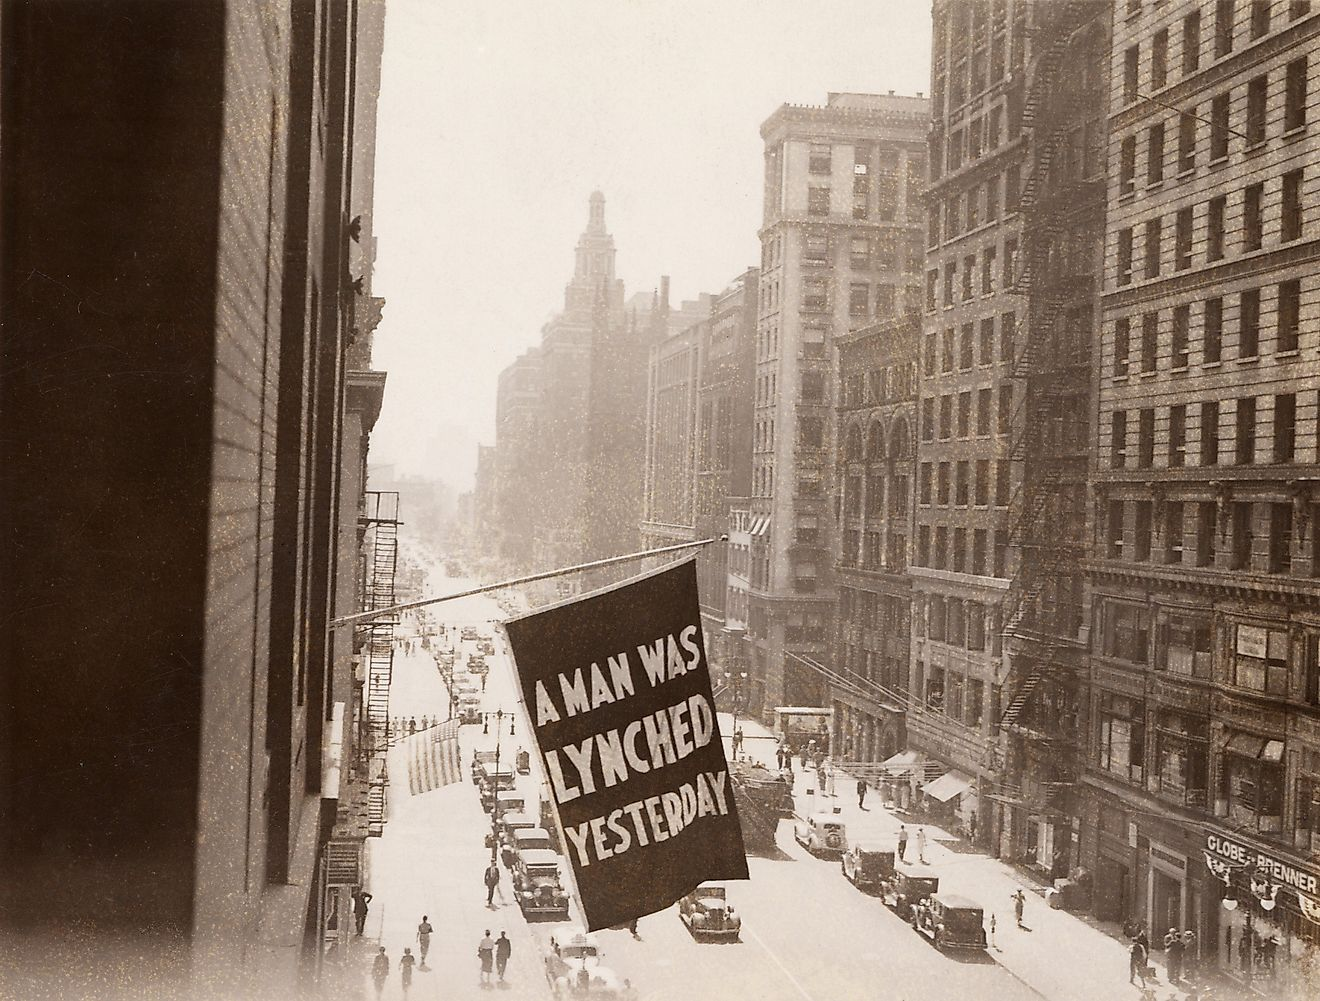 'A MAN WAS LYNCHED YESTERDAY,' is flown from the window of the NAACP headquarters on 69 Fifth Ave., New York City in 1936.Image credit: Everett Collection / Shutterstock.com